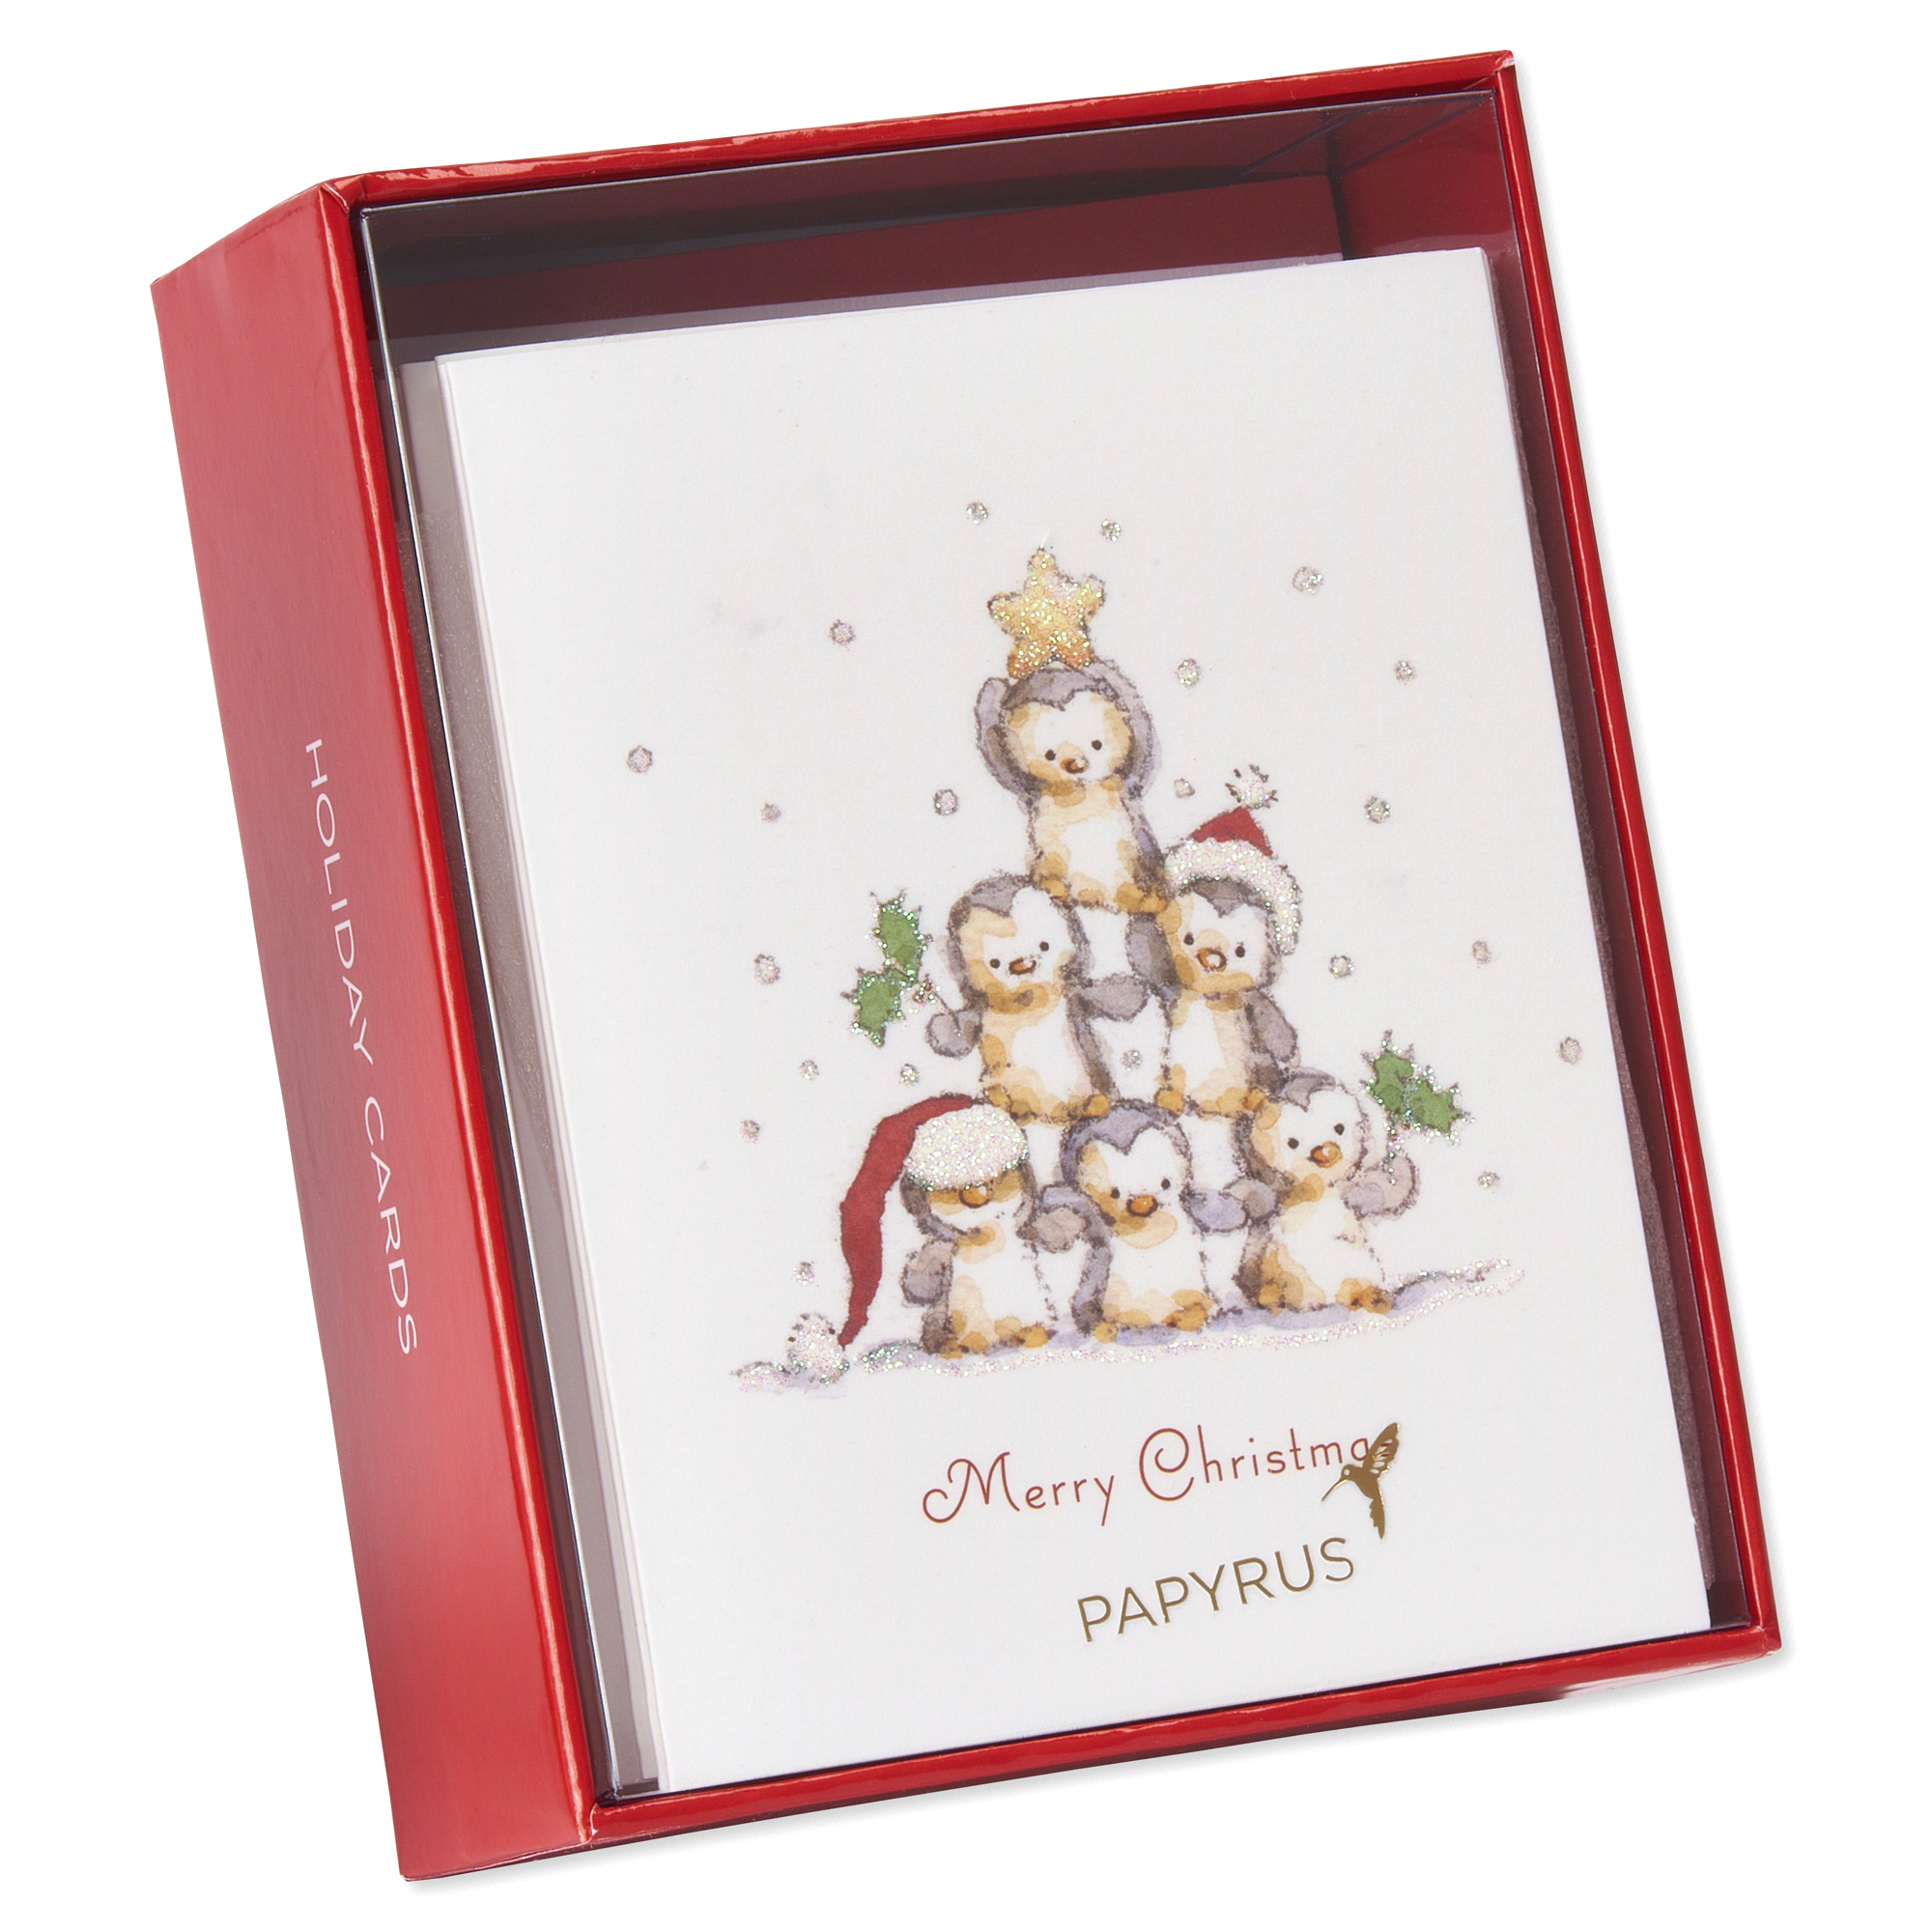 Papyrus Penguin Pyramid Holiday Boxed Cards   Meijer.com